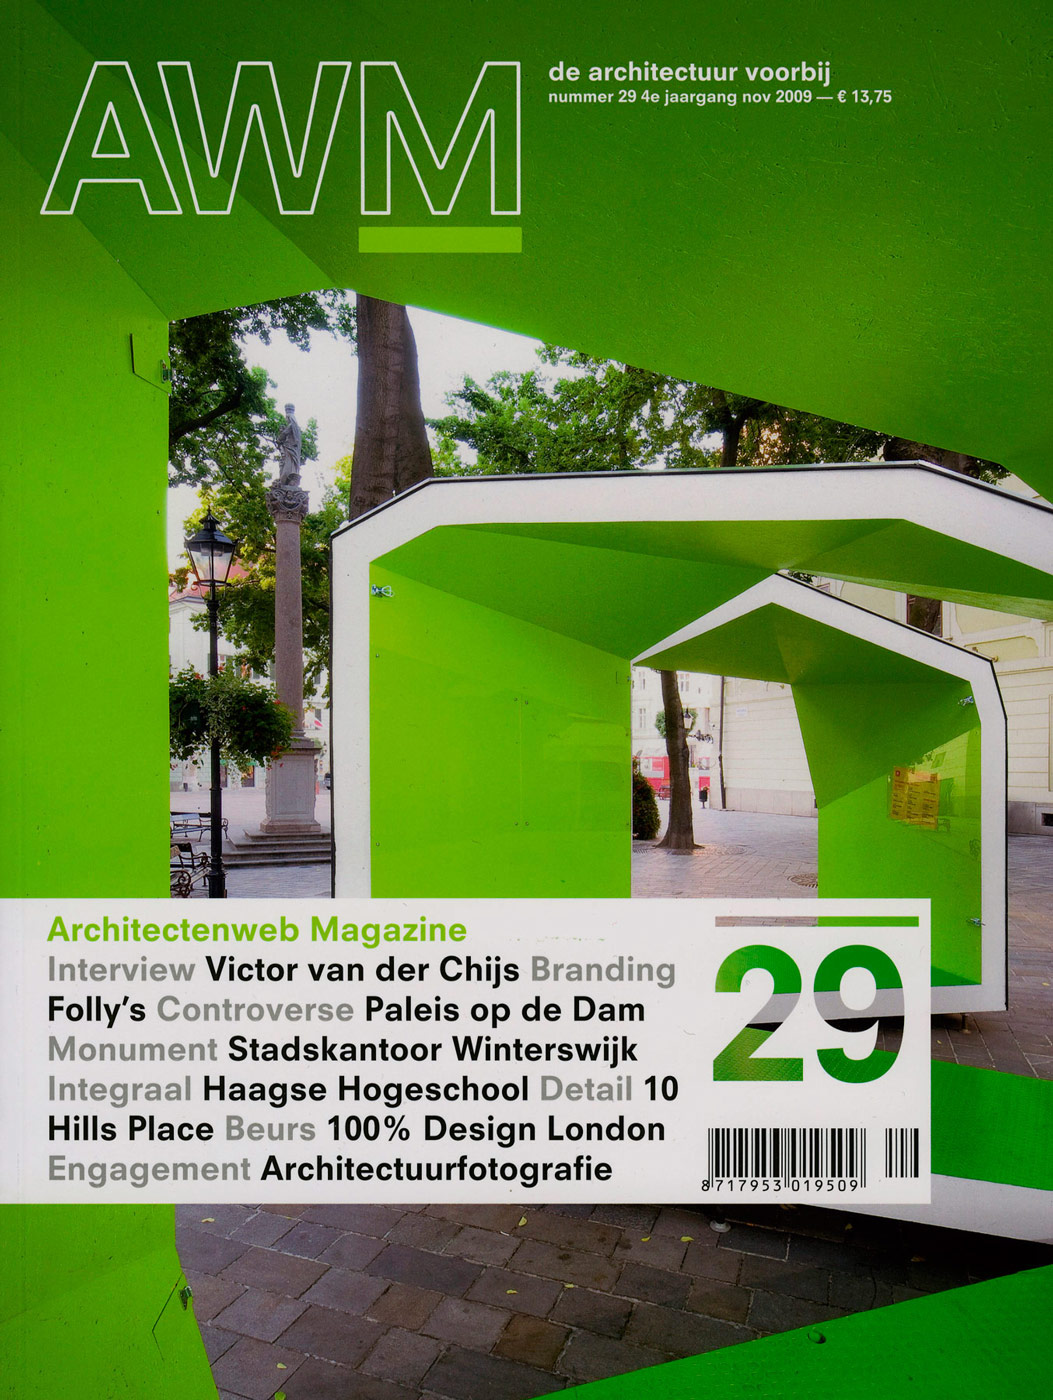 AWM_magazine_cover29_nov2009_solar